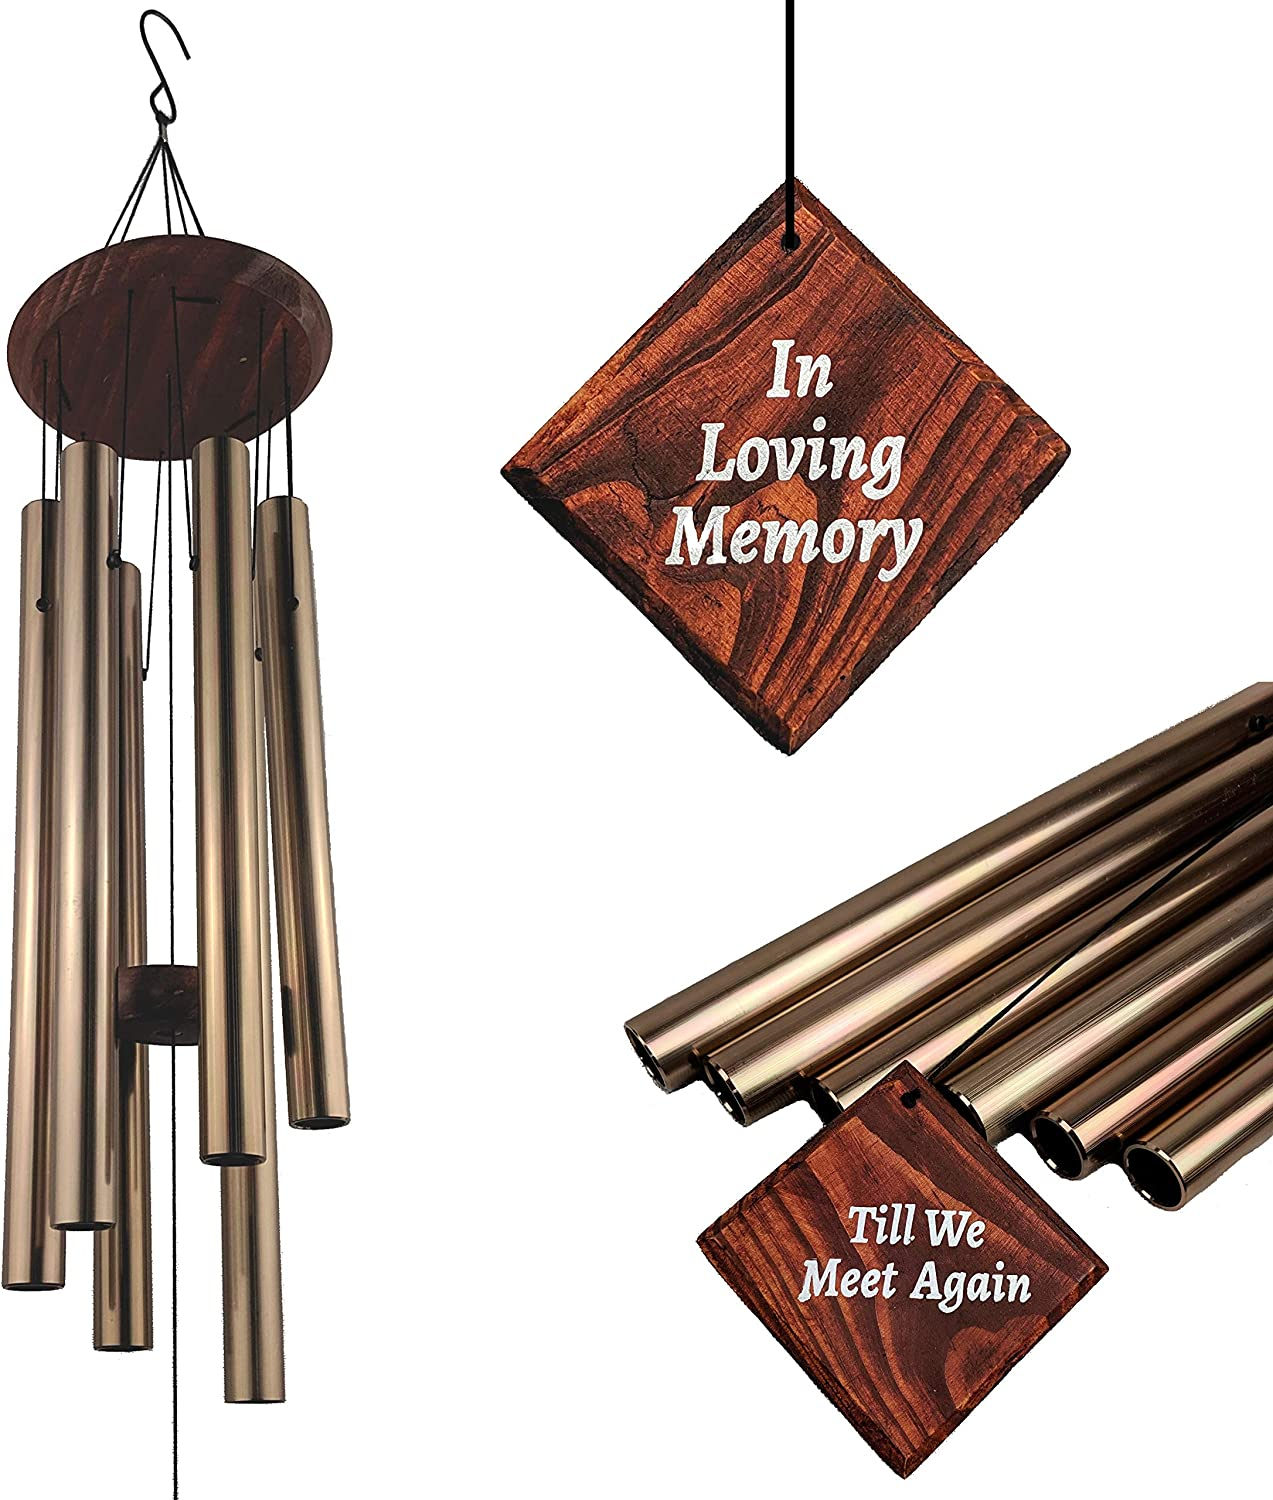 MAGARA MEMORIES Memorial Wind Chimes for Loss Loved Credence of Win One Industry No. 1